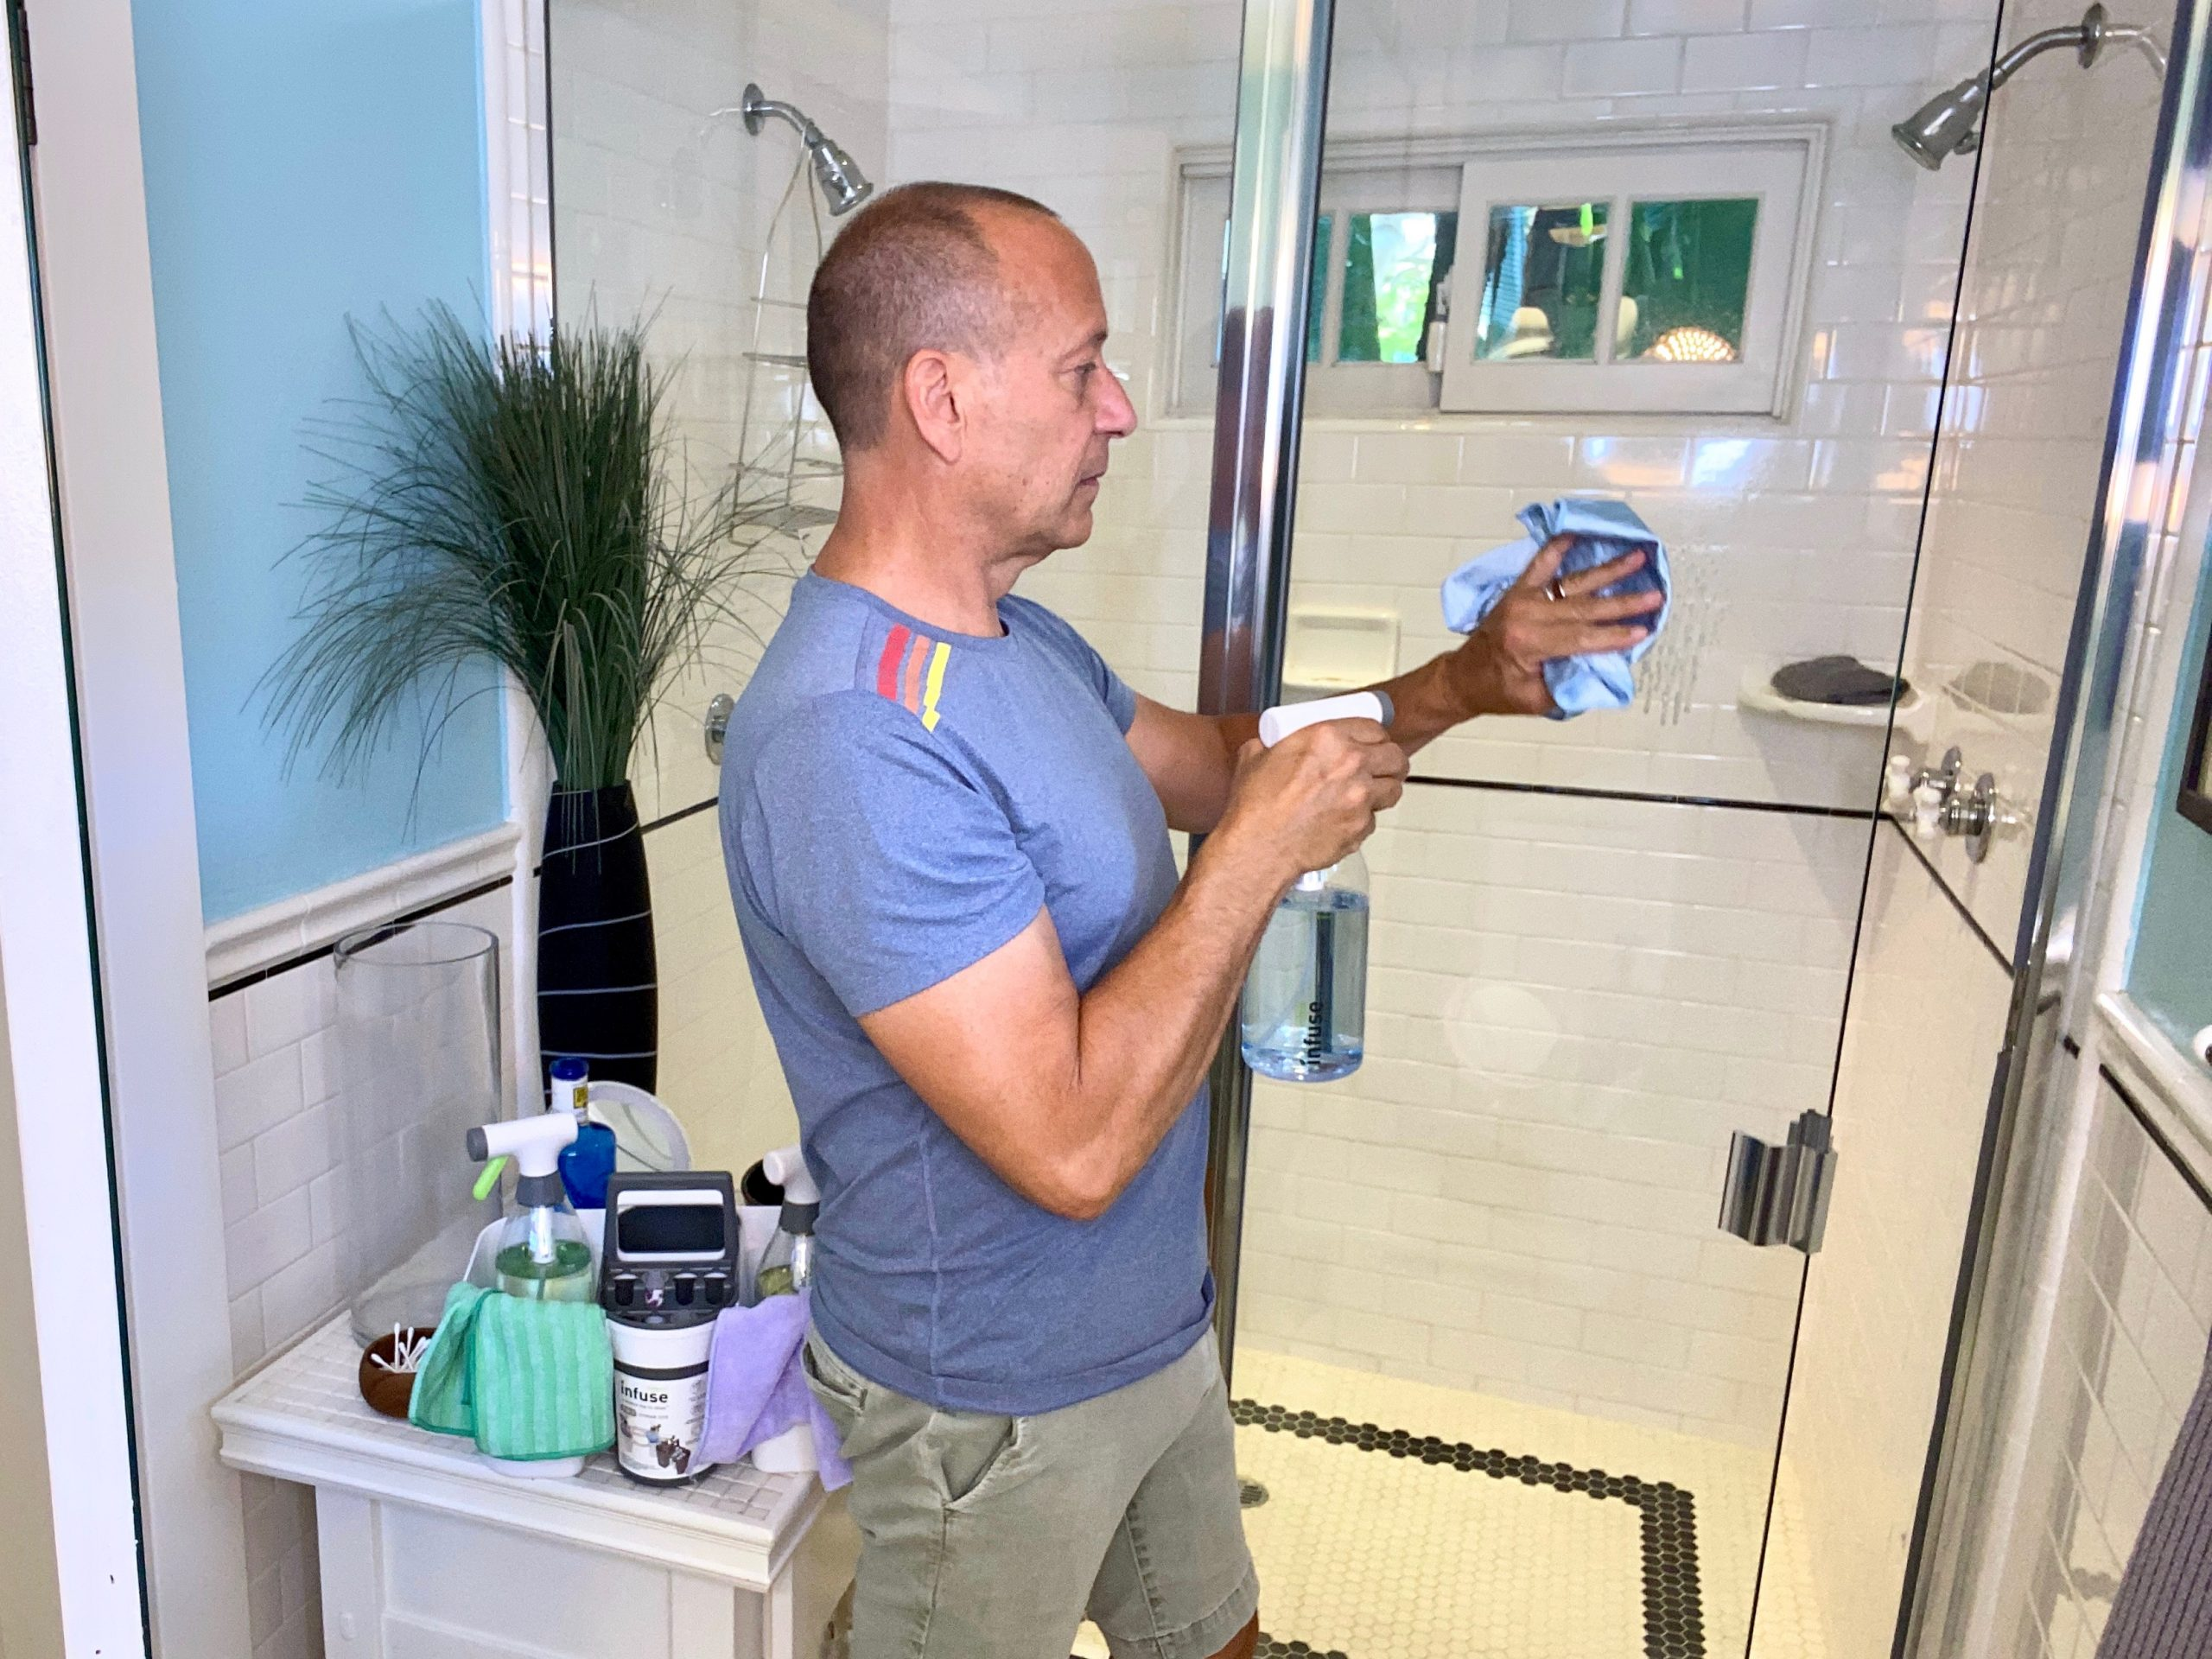 man cleans glass shower door with Infuse Cleaning System spray bottle and cloth